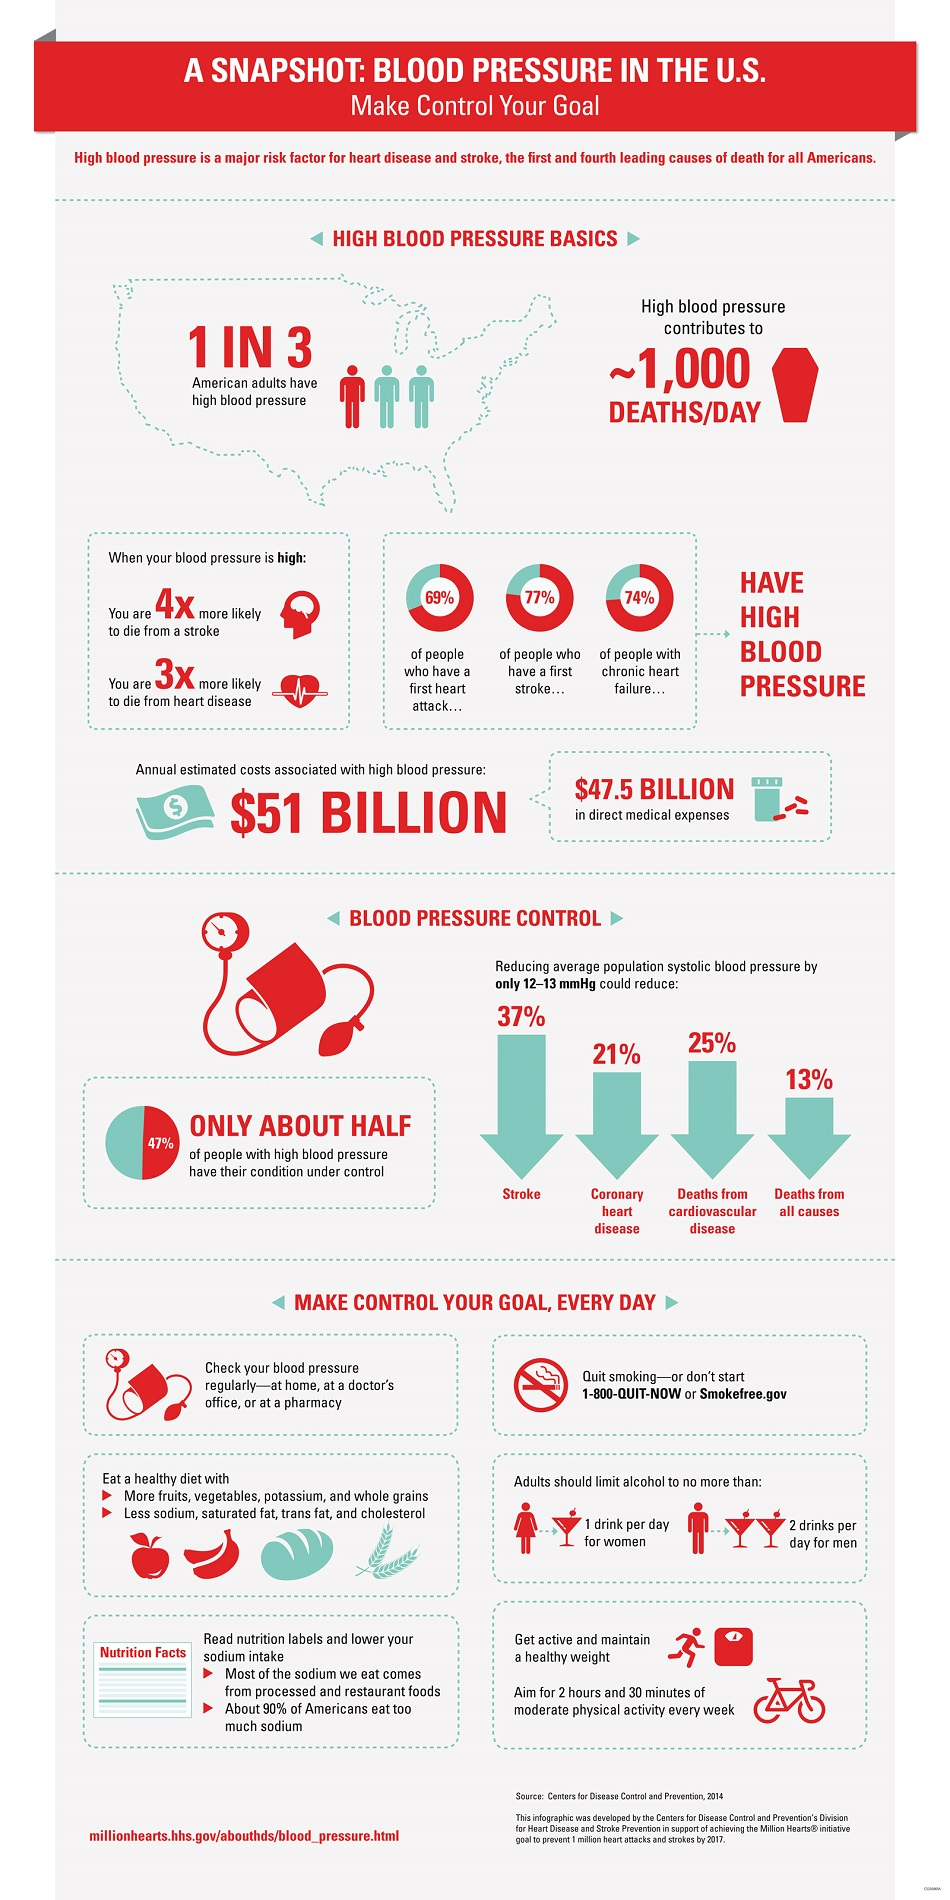 A Snapshot: Blood Pressure in the U.S. Make Control Your Goal. High blood pressure is a major risk factor for heart disease and stroke, the first and fourth leading causes of death for all Americans. High Blood Pressure Basics. 1 in 3 adults have high blood pressure. High blood pressure contributes to ~1,000 deaths/day. When your blood pressure is high, you are 4 times more likely to die from a stroke, and you are 3 times more likely to die from heart disease. 69% of people who have a first heart attack, 77% of people who have a first stroke, and 74% of people with chronic heart failure have high blood pressure. Annual estimated costs associated with high blood pressure: $51 billion, including $47.5 billion in direct medical expenses. Blood Pressure Control. Only about half of people with high blood pressure have their condition under control. Reducing average population systolic blood pressure by only 12–13 mmHg could reduce stroke by 37%, coronary heart disease by 21%, deaths from cardiovascular disease by 25%, and deaths from all causes by 13%. Make Control Your Goal, Every Day. Check your blood pressure regularly—at home, at a doctor's office, or at a pharmacy. Eat a healthy diet with more fruits, vegetables, potassium, and whole grains and less sodium, saturated fat, trans fat, and cholesterol . Read nutrition labels and lower your sodium intake. Most of the sodium we eat comes from processed and restaurant foods. About 90% of Americans eat too much sodium. Quit smoking—or don't start. 1-800-QUIT-NOW or Smokefree.gov. Adults should limit alcohol to no more than 1 drink per day for women and 2 drinks per day for men. Get active and maintain a healthy weight. Aim for 2 hours and 30 minutes of moderate physical activity every week. This infographic was developed by the Centers for Disease Control and Prevention's Division for Heart Disease and Stroke Prevention in support of achieving the Million Hearts® initiative goal to prevent 1 million heart attacks and strokes by 2017.